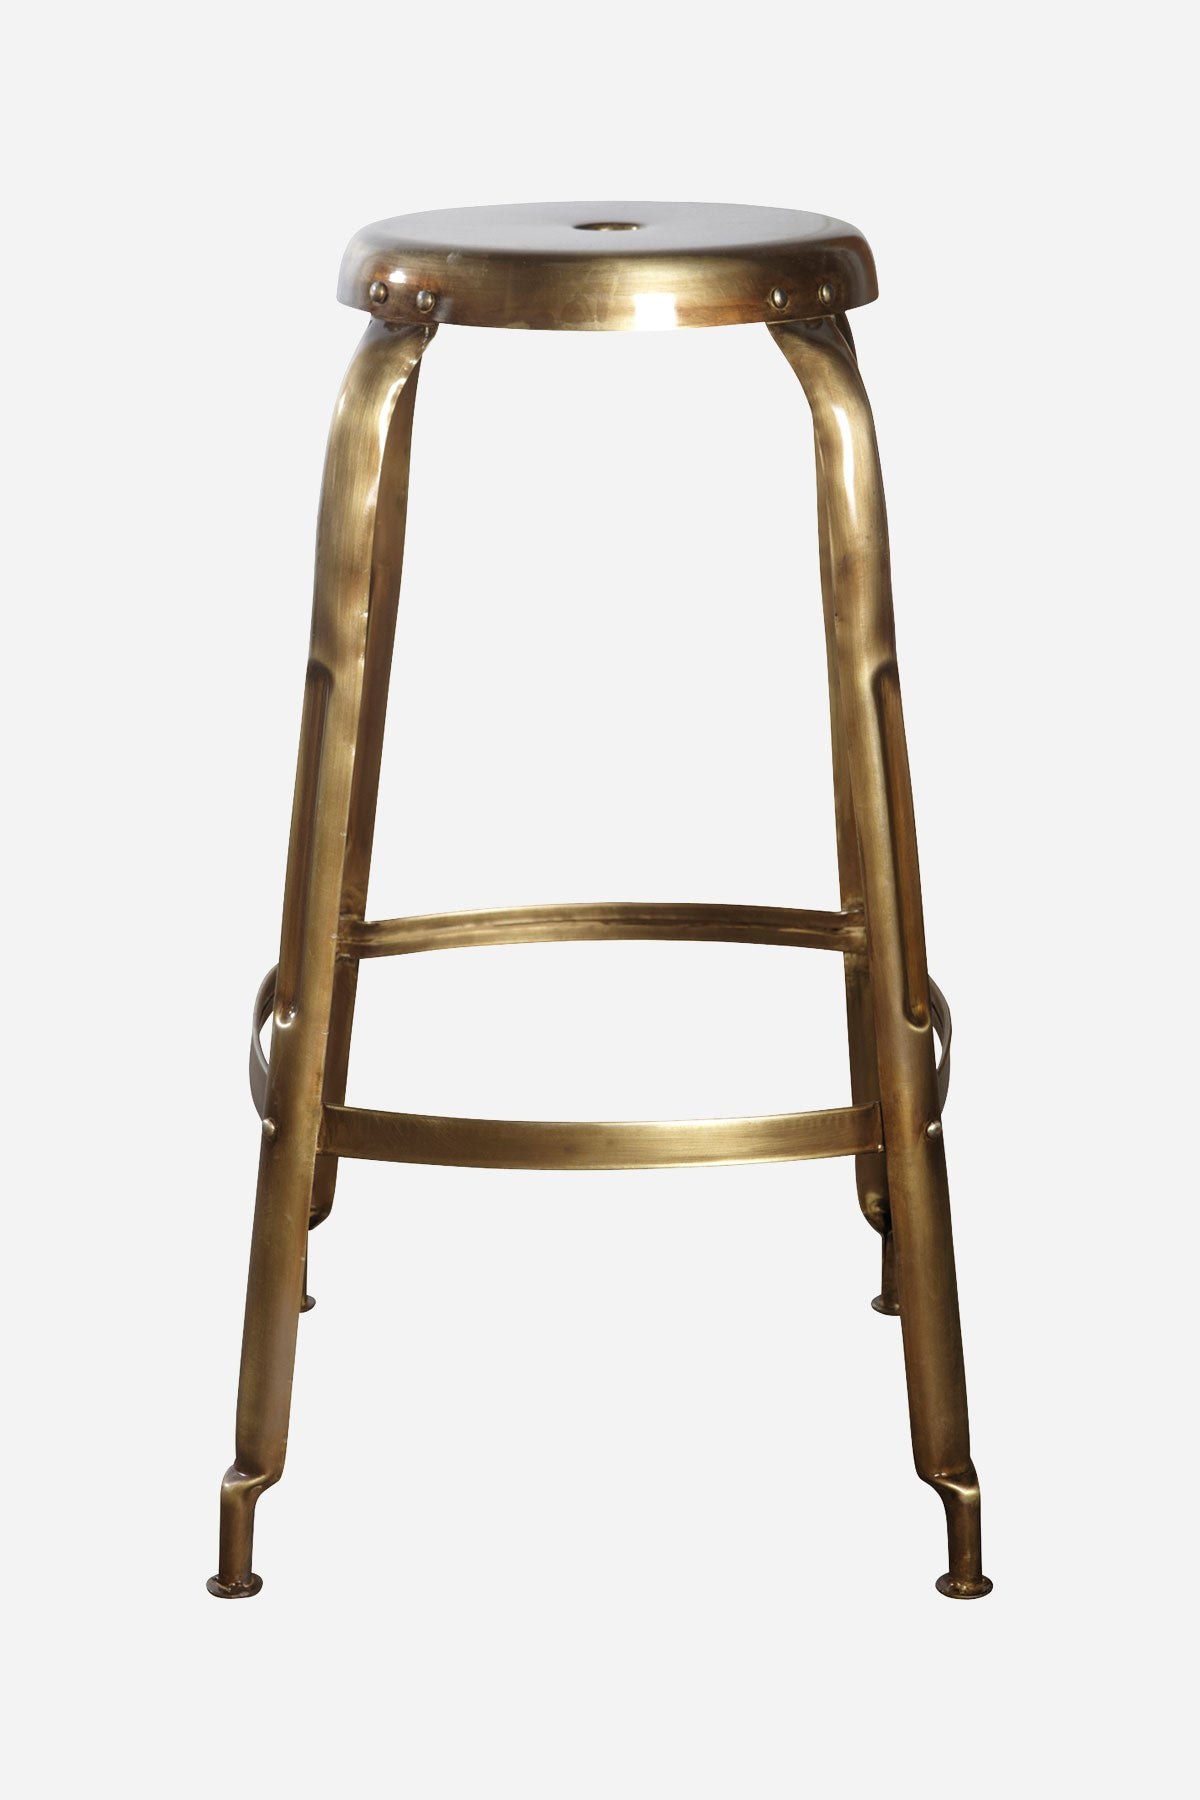 classic french kitchen barstool brass finish